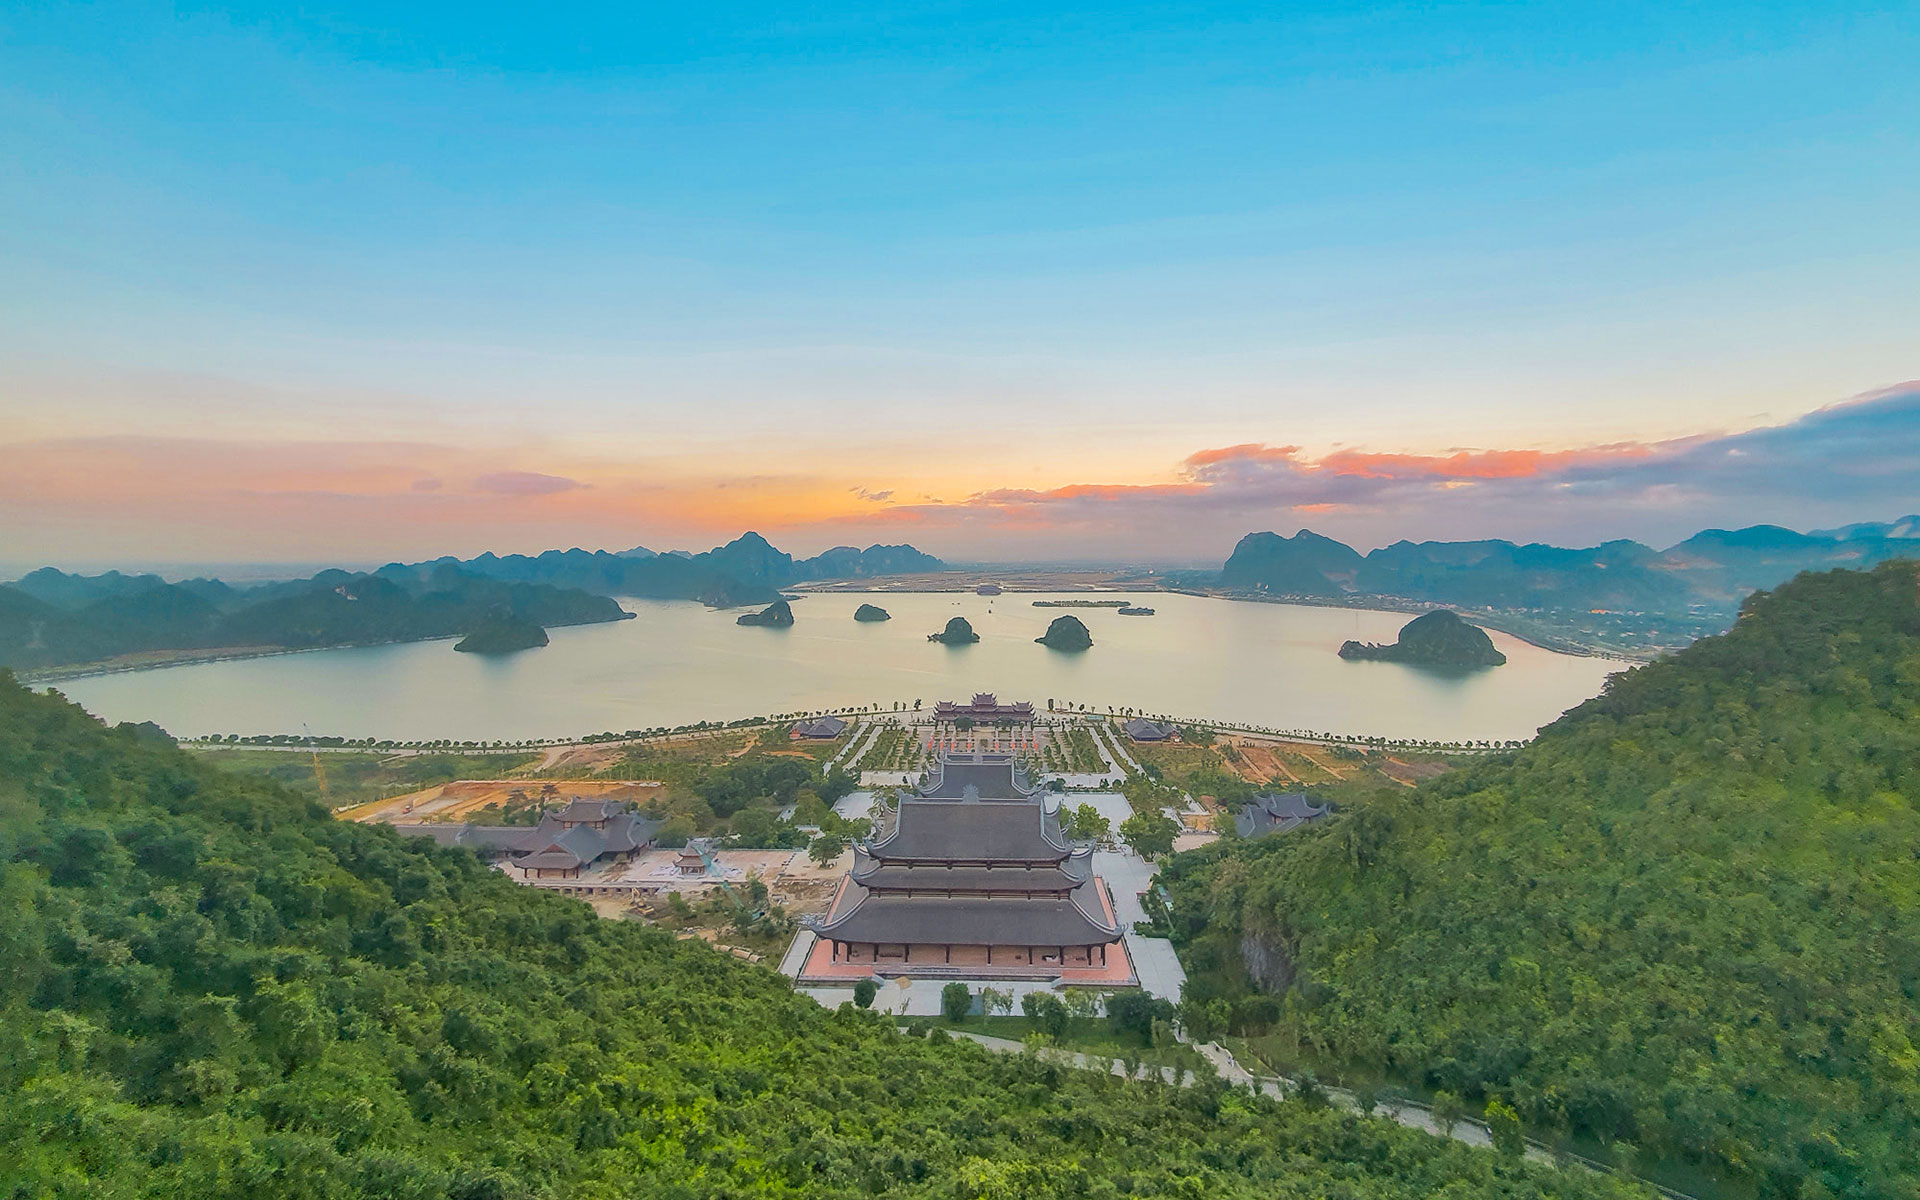 Tam Chuc Pagoda from above